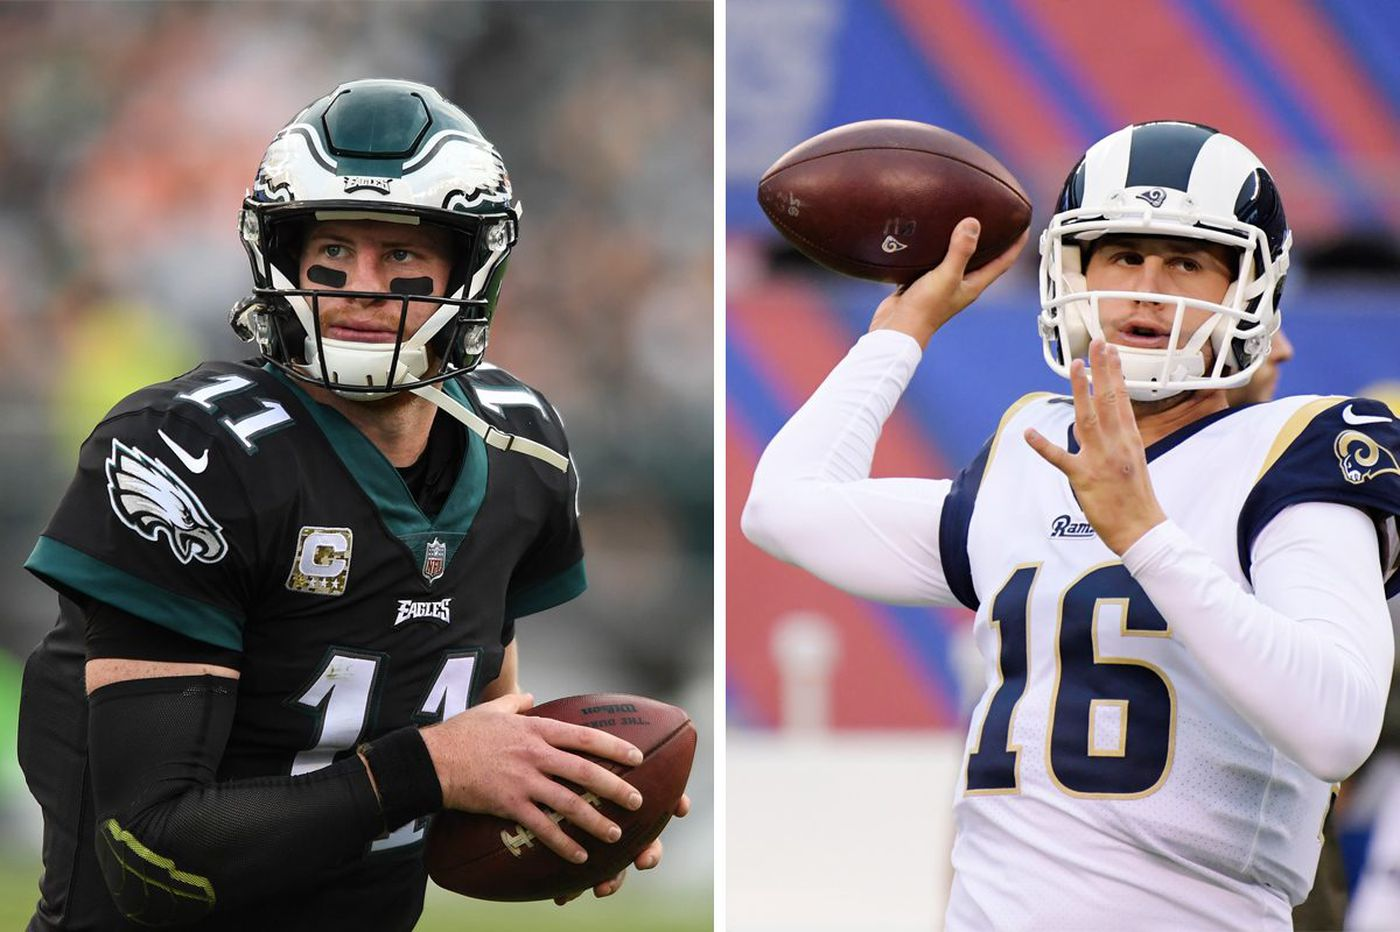 The Carson Wentz-Jared Goff argument enters new realm as both Eagles and Rams near contract negotiation time